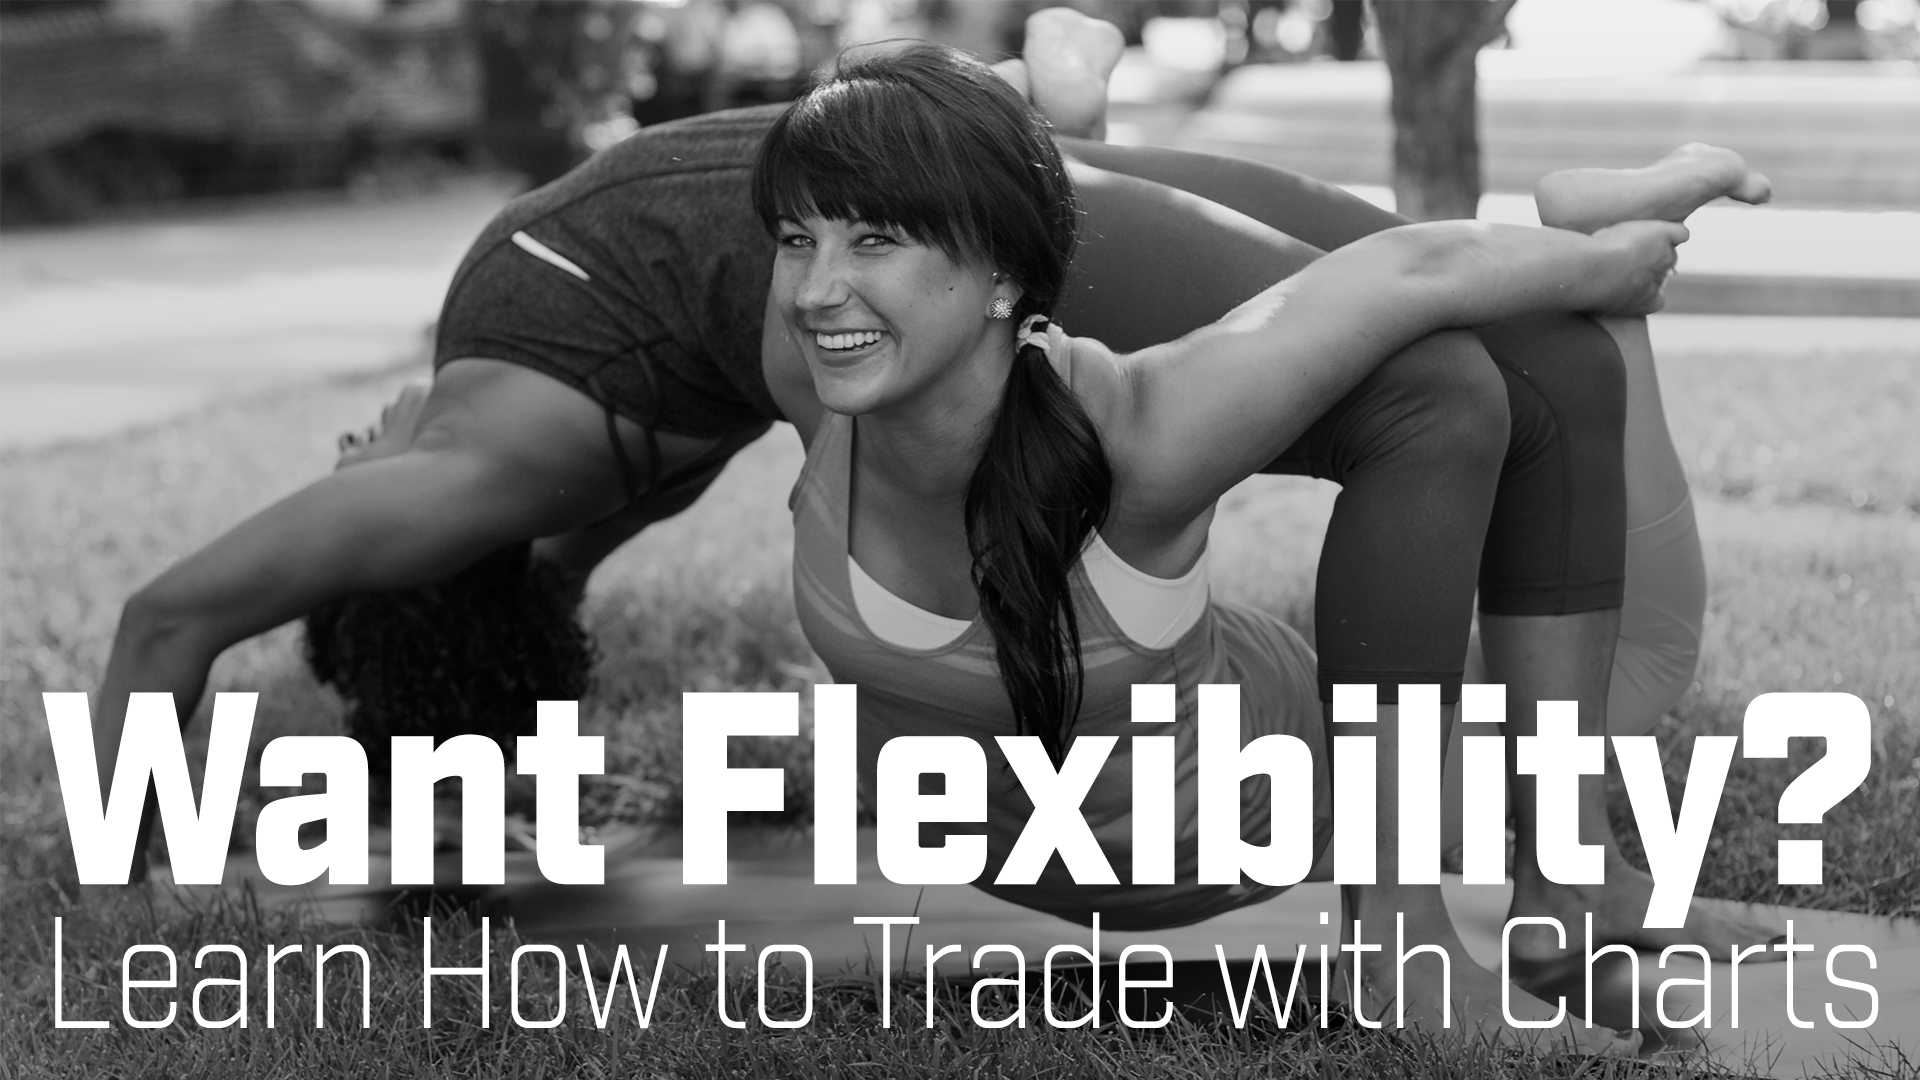 Want Flexibility? Learn How To Trade With Charts